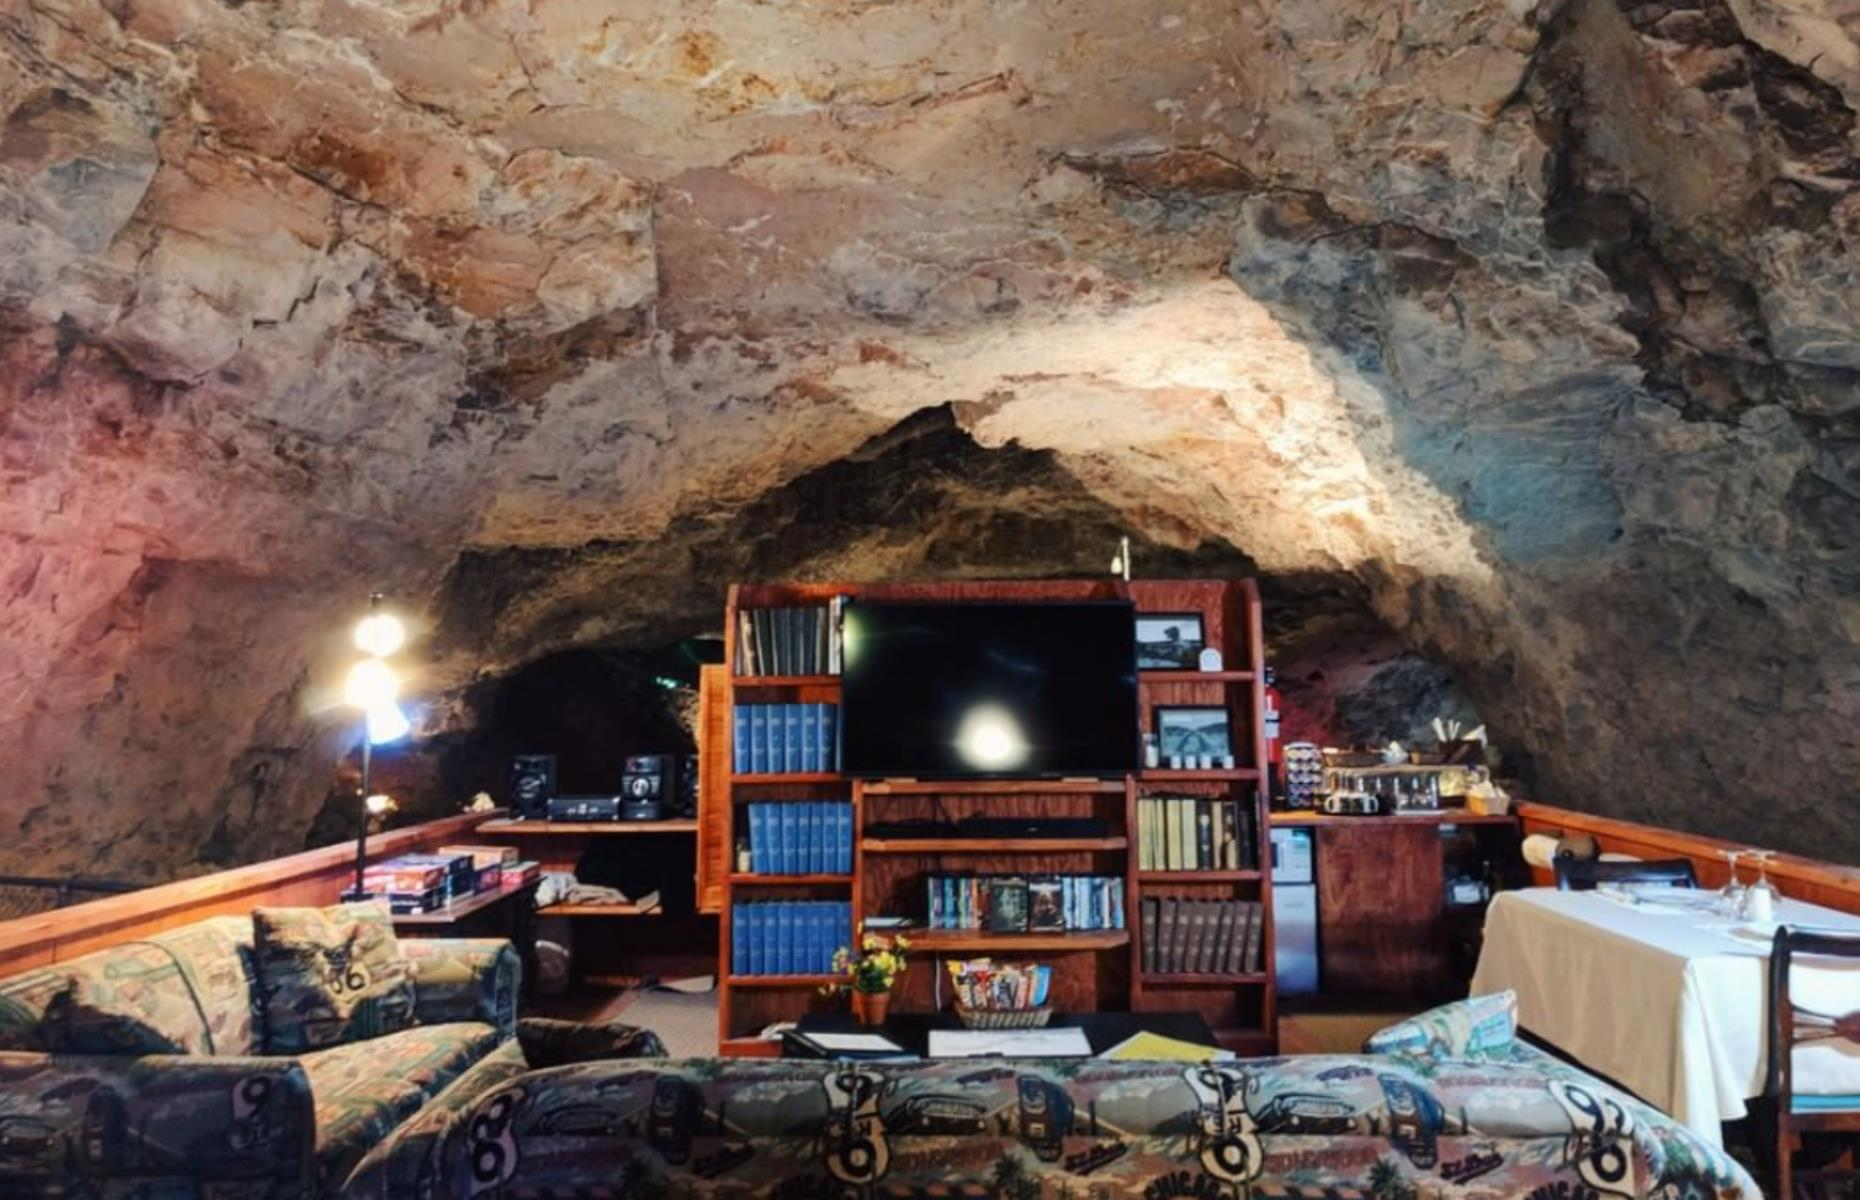 Slide 4 of 52: Billed as the largest, deepest and darkest motel room in the world, the Underground Cave Suite is not for the faint-hearted. It's tucked 22 stories below the Grand Canyon and is surprisingly luxurious, with a flatscreen TV, library of old books and magazines, record player and comfy couches – all with walls that are around 65 million years old. There are rooms available above ground too – though this one is definitely the most fun.